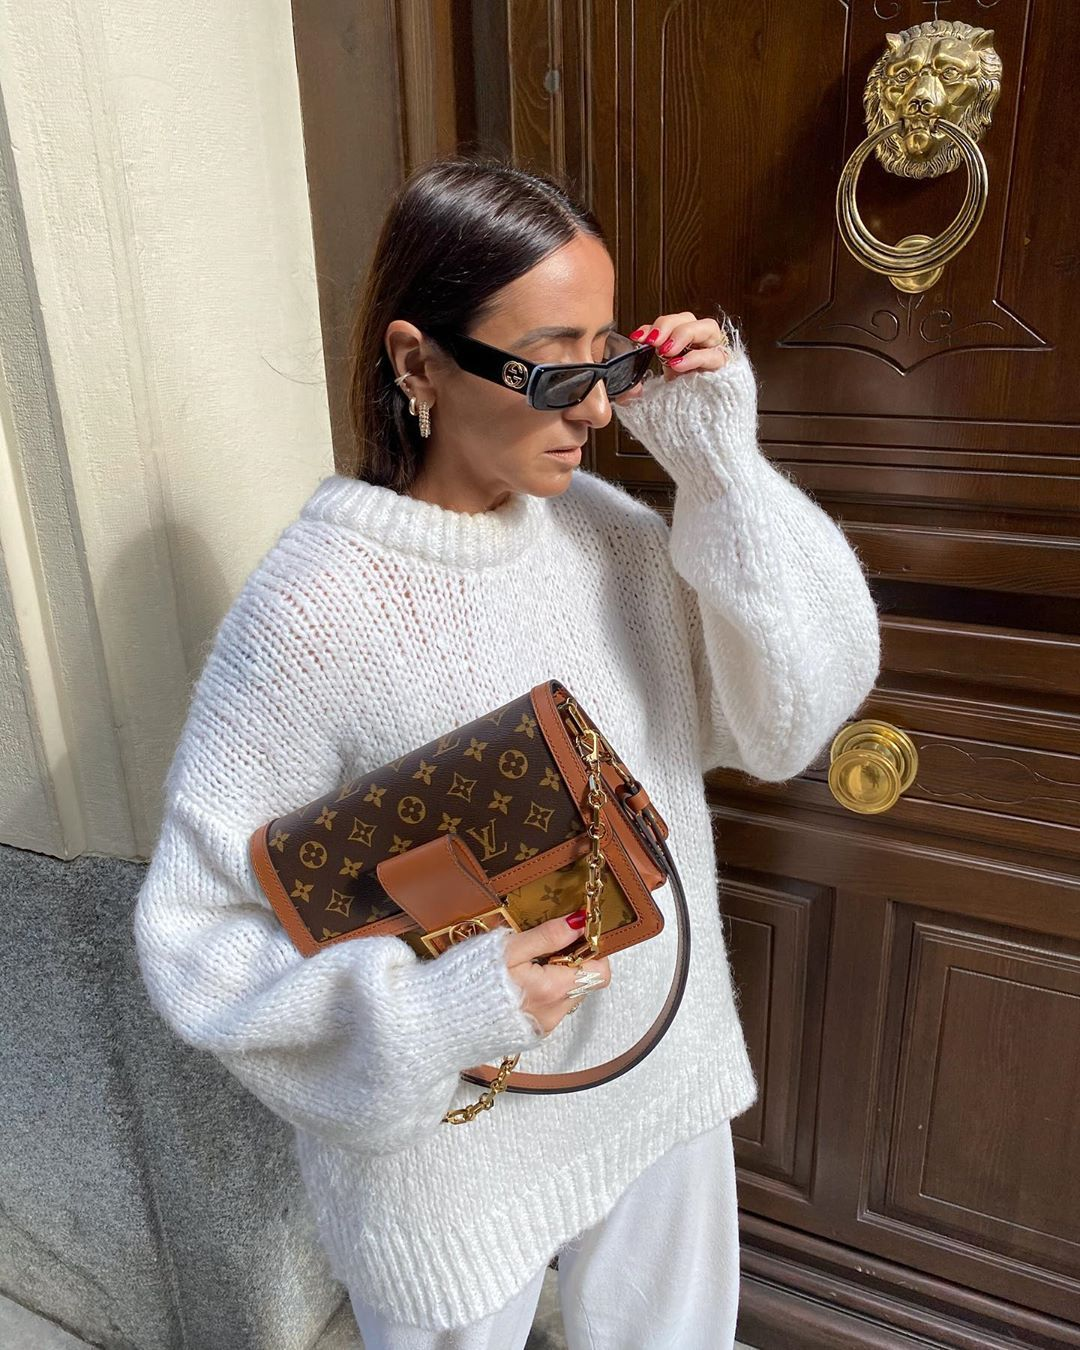 """Laura Eguizabal's Instagram profile post: """"🐼 #white #lookoftheday #look #girl #love #instagood #instamoment #outfits #ootd"""""""